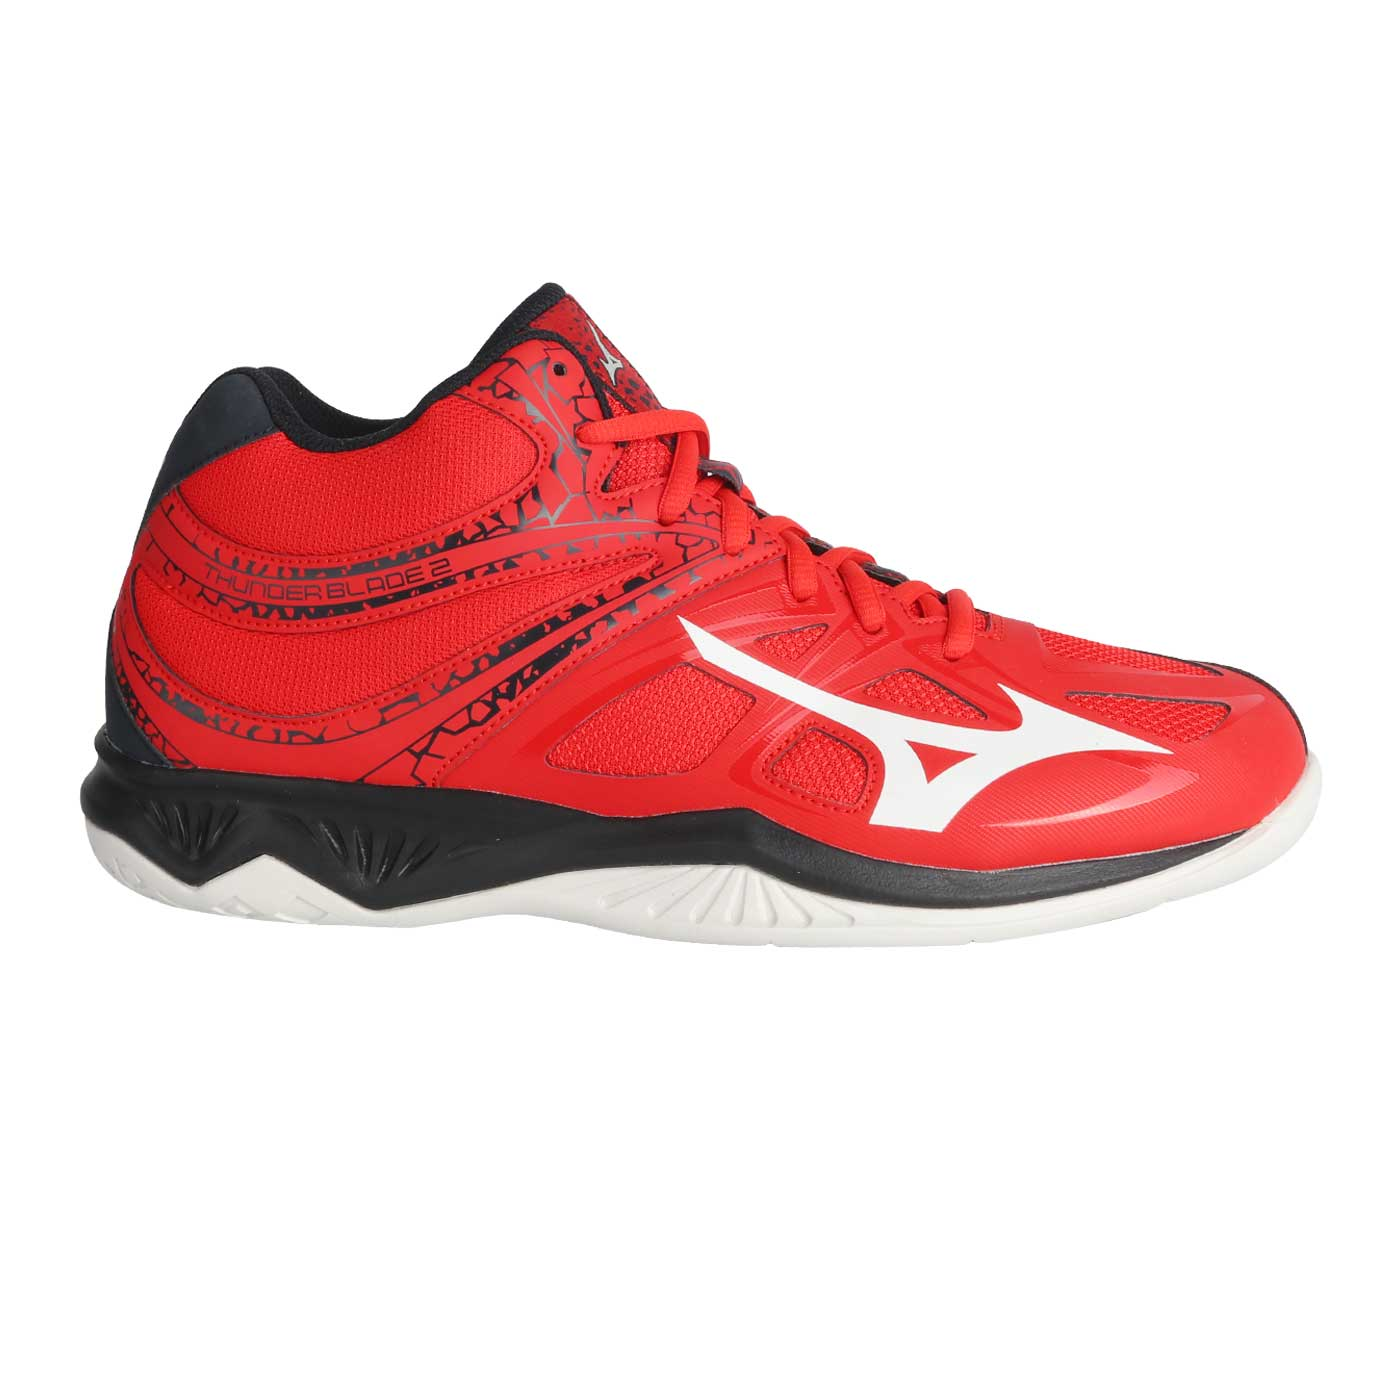 THUNDER BLADE 2 MID-FIERY RED/WHITE/SALUTE